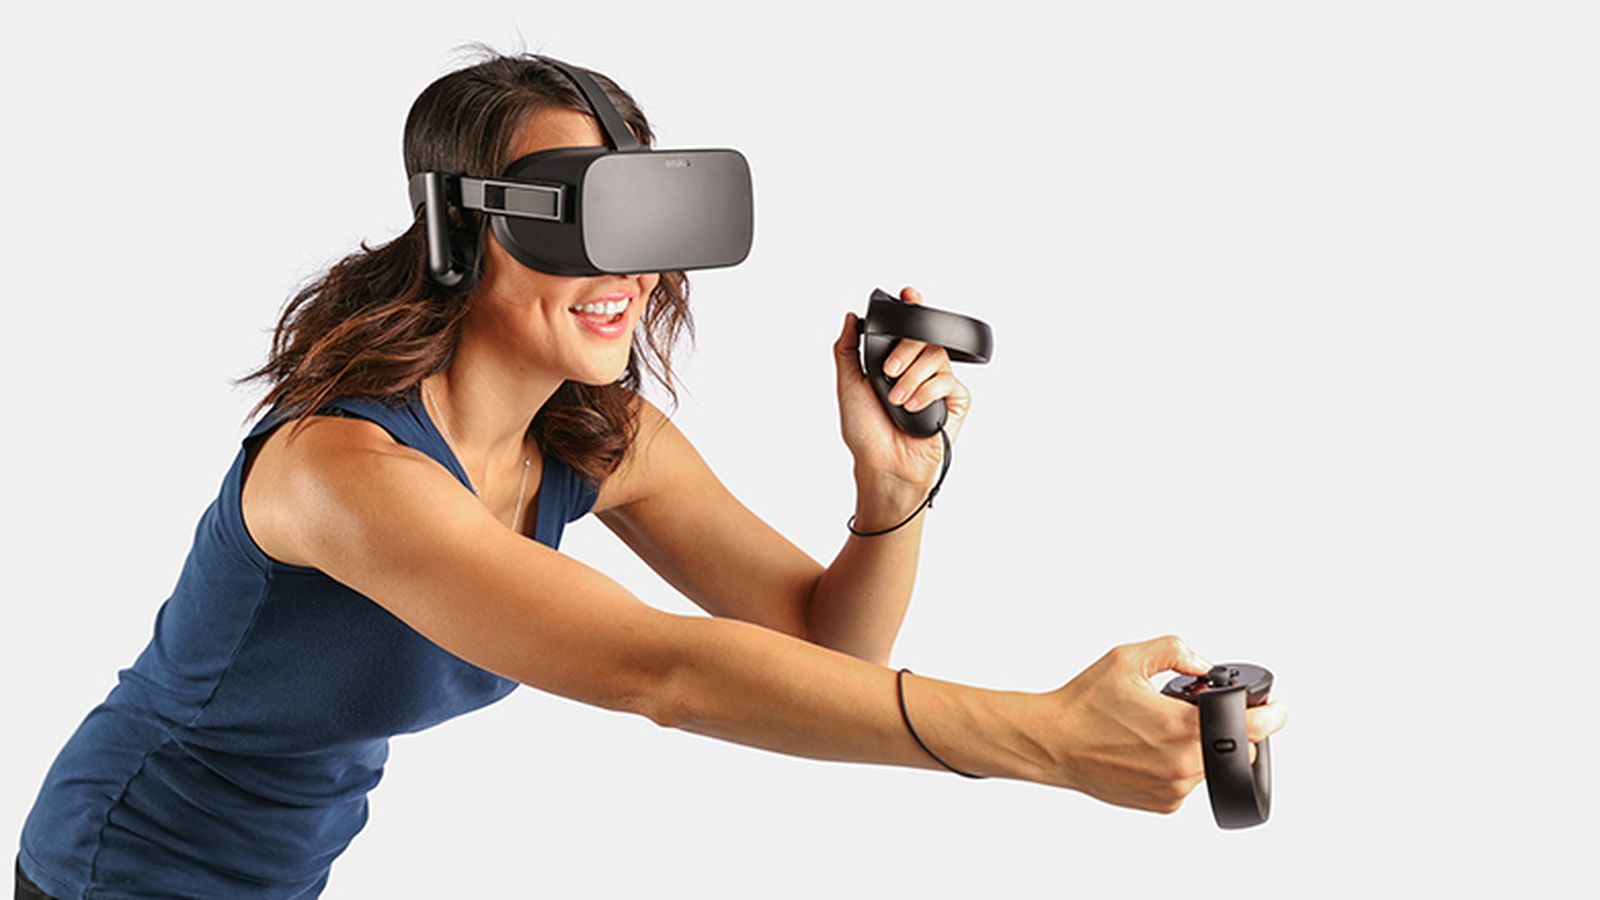 Here are the 53 launch titles that will be available for the Oculus Touch controllers